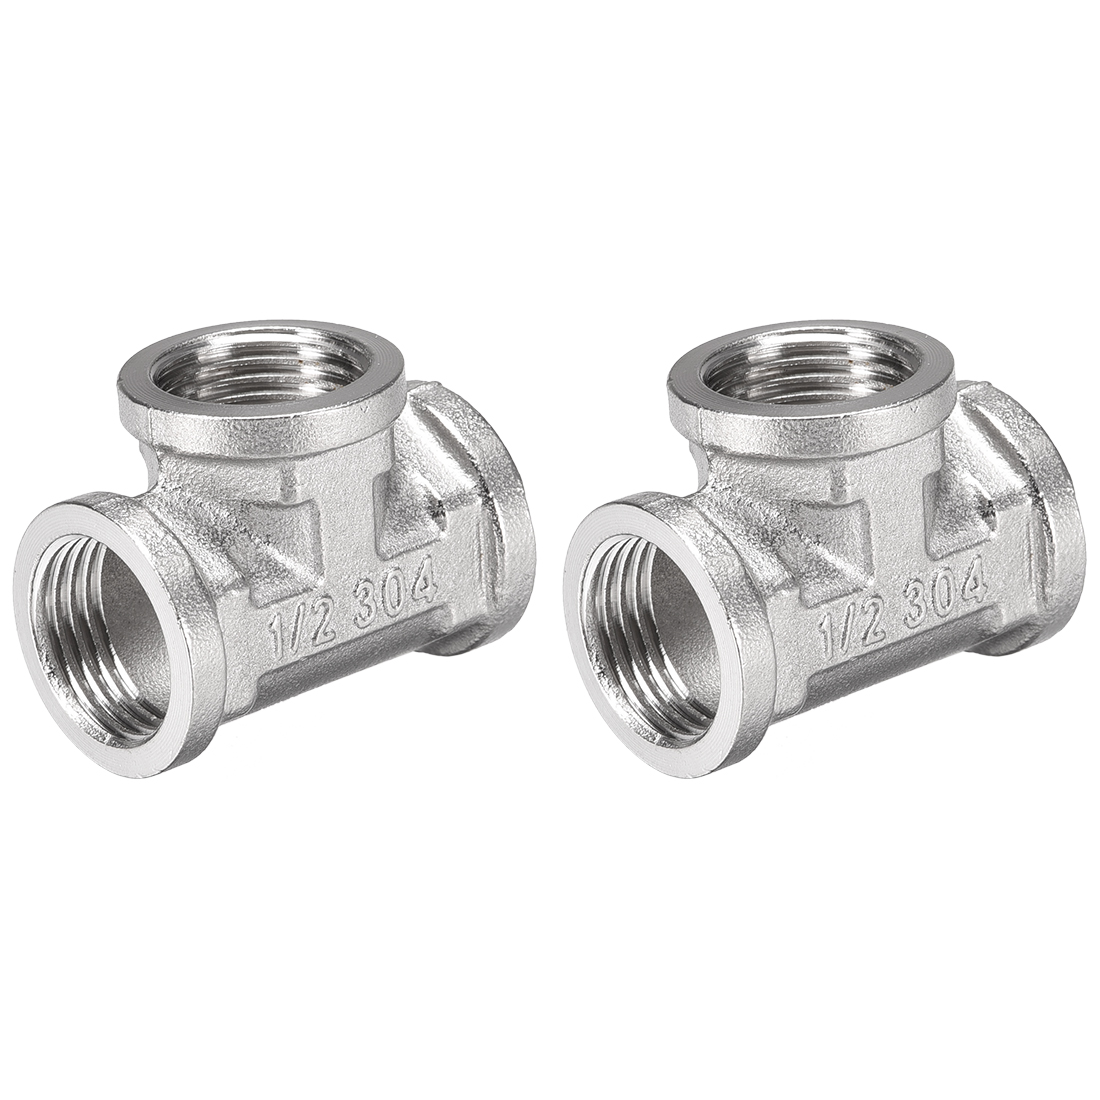 Stainless Steel 304 Cast Pipe Fitting 1/2BSPT Tee Shaped Connector Coupler 2pcs